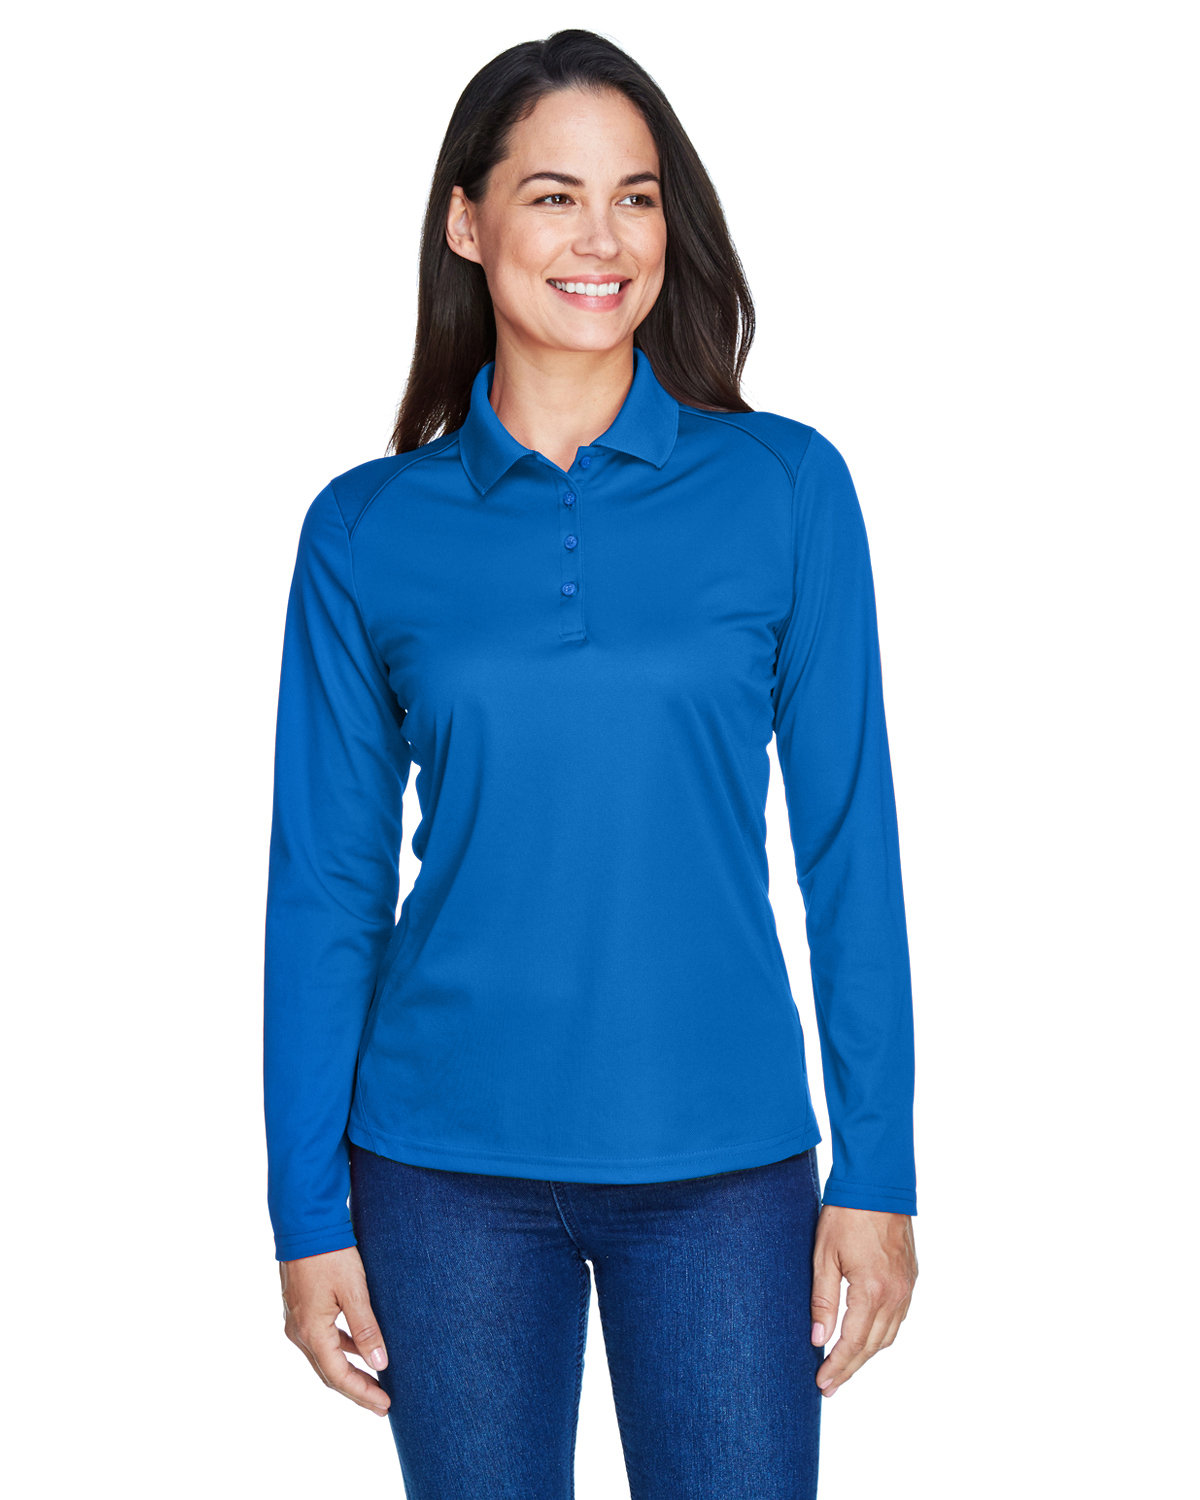 Extreme Ladies' Eperformance™ Snag Protection Long-Sleeve Polo TRUE ROYAL